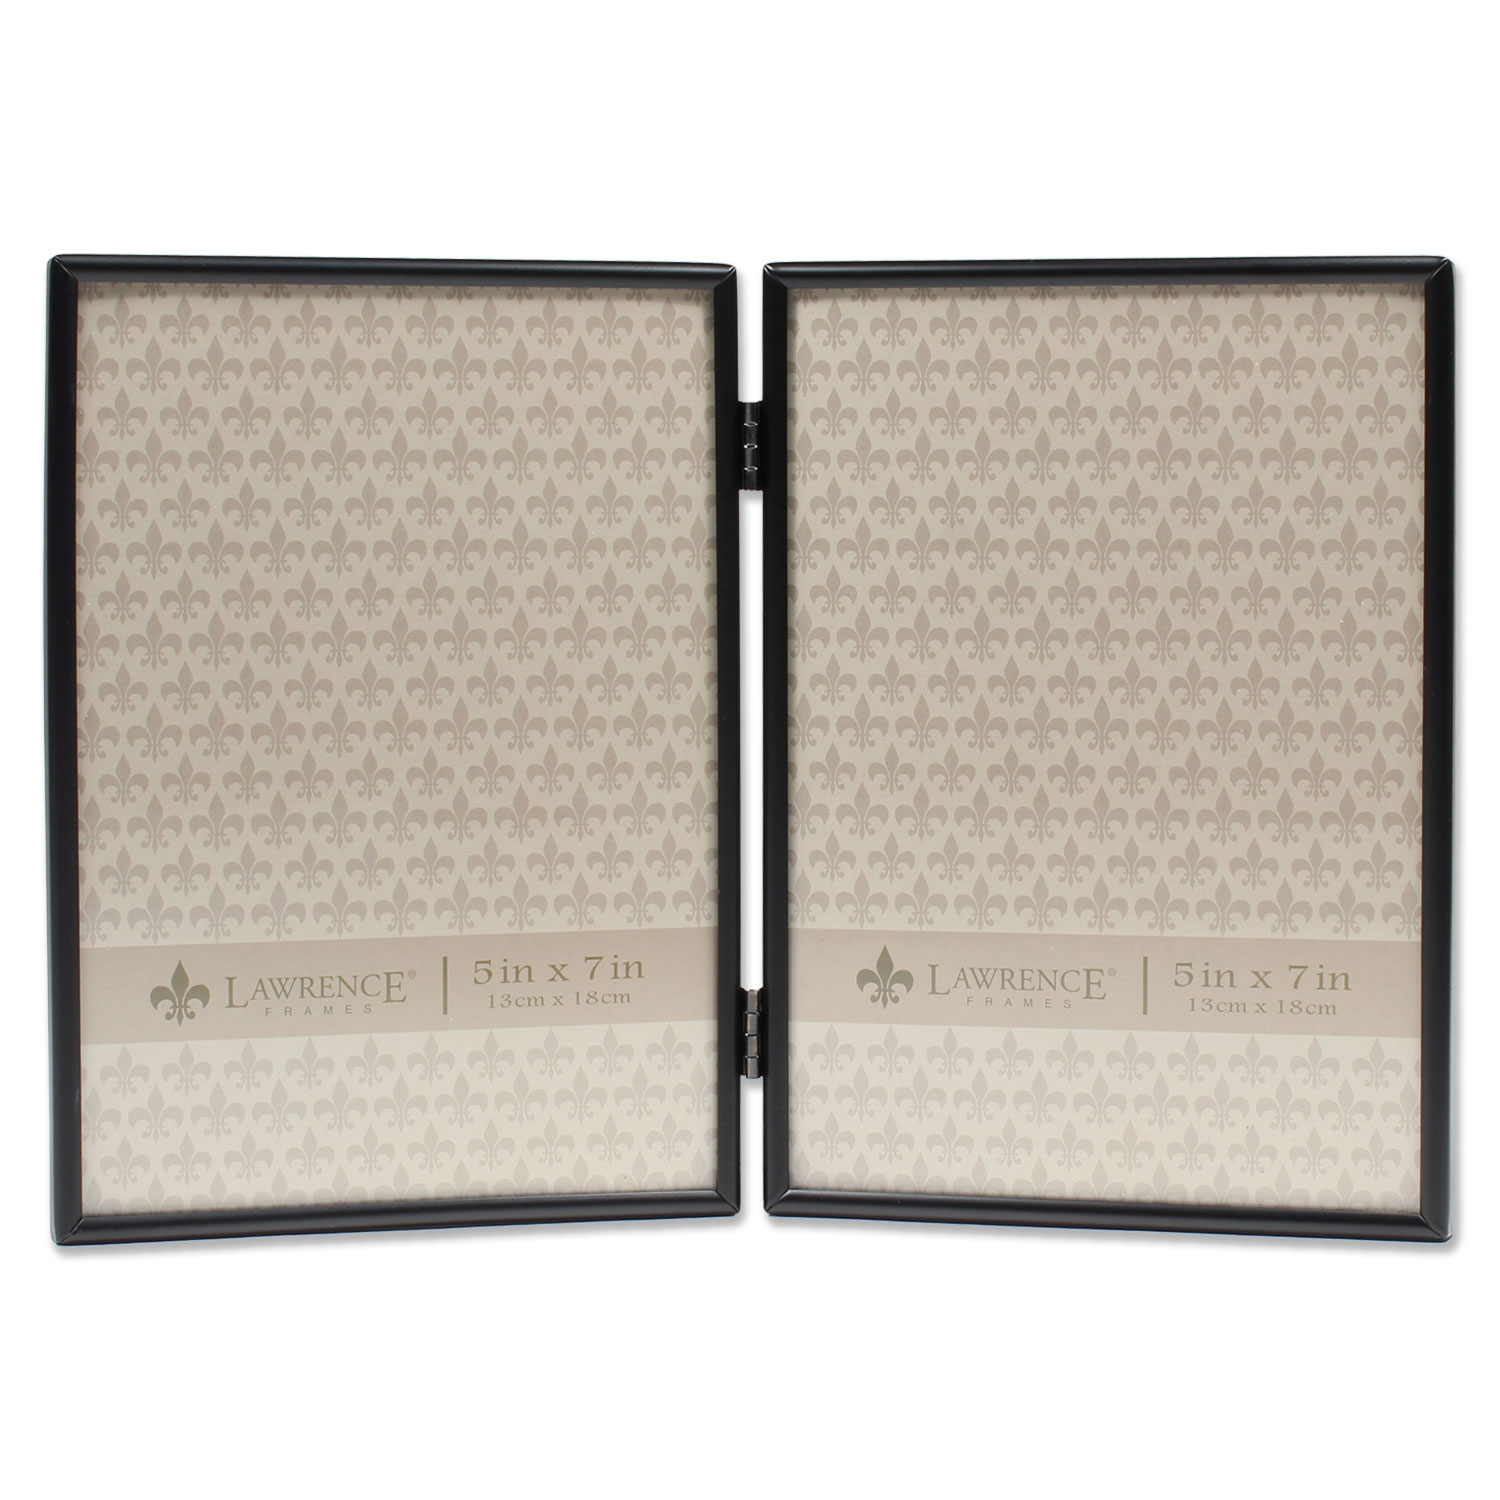 5x7 Hinged Double Simply Black Picture Frame | PhotoFrames.net